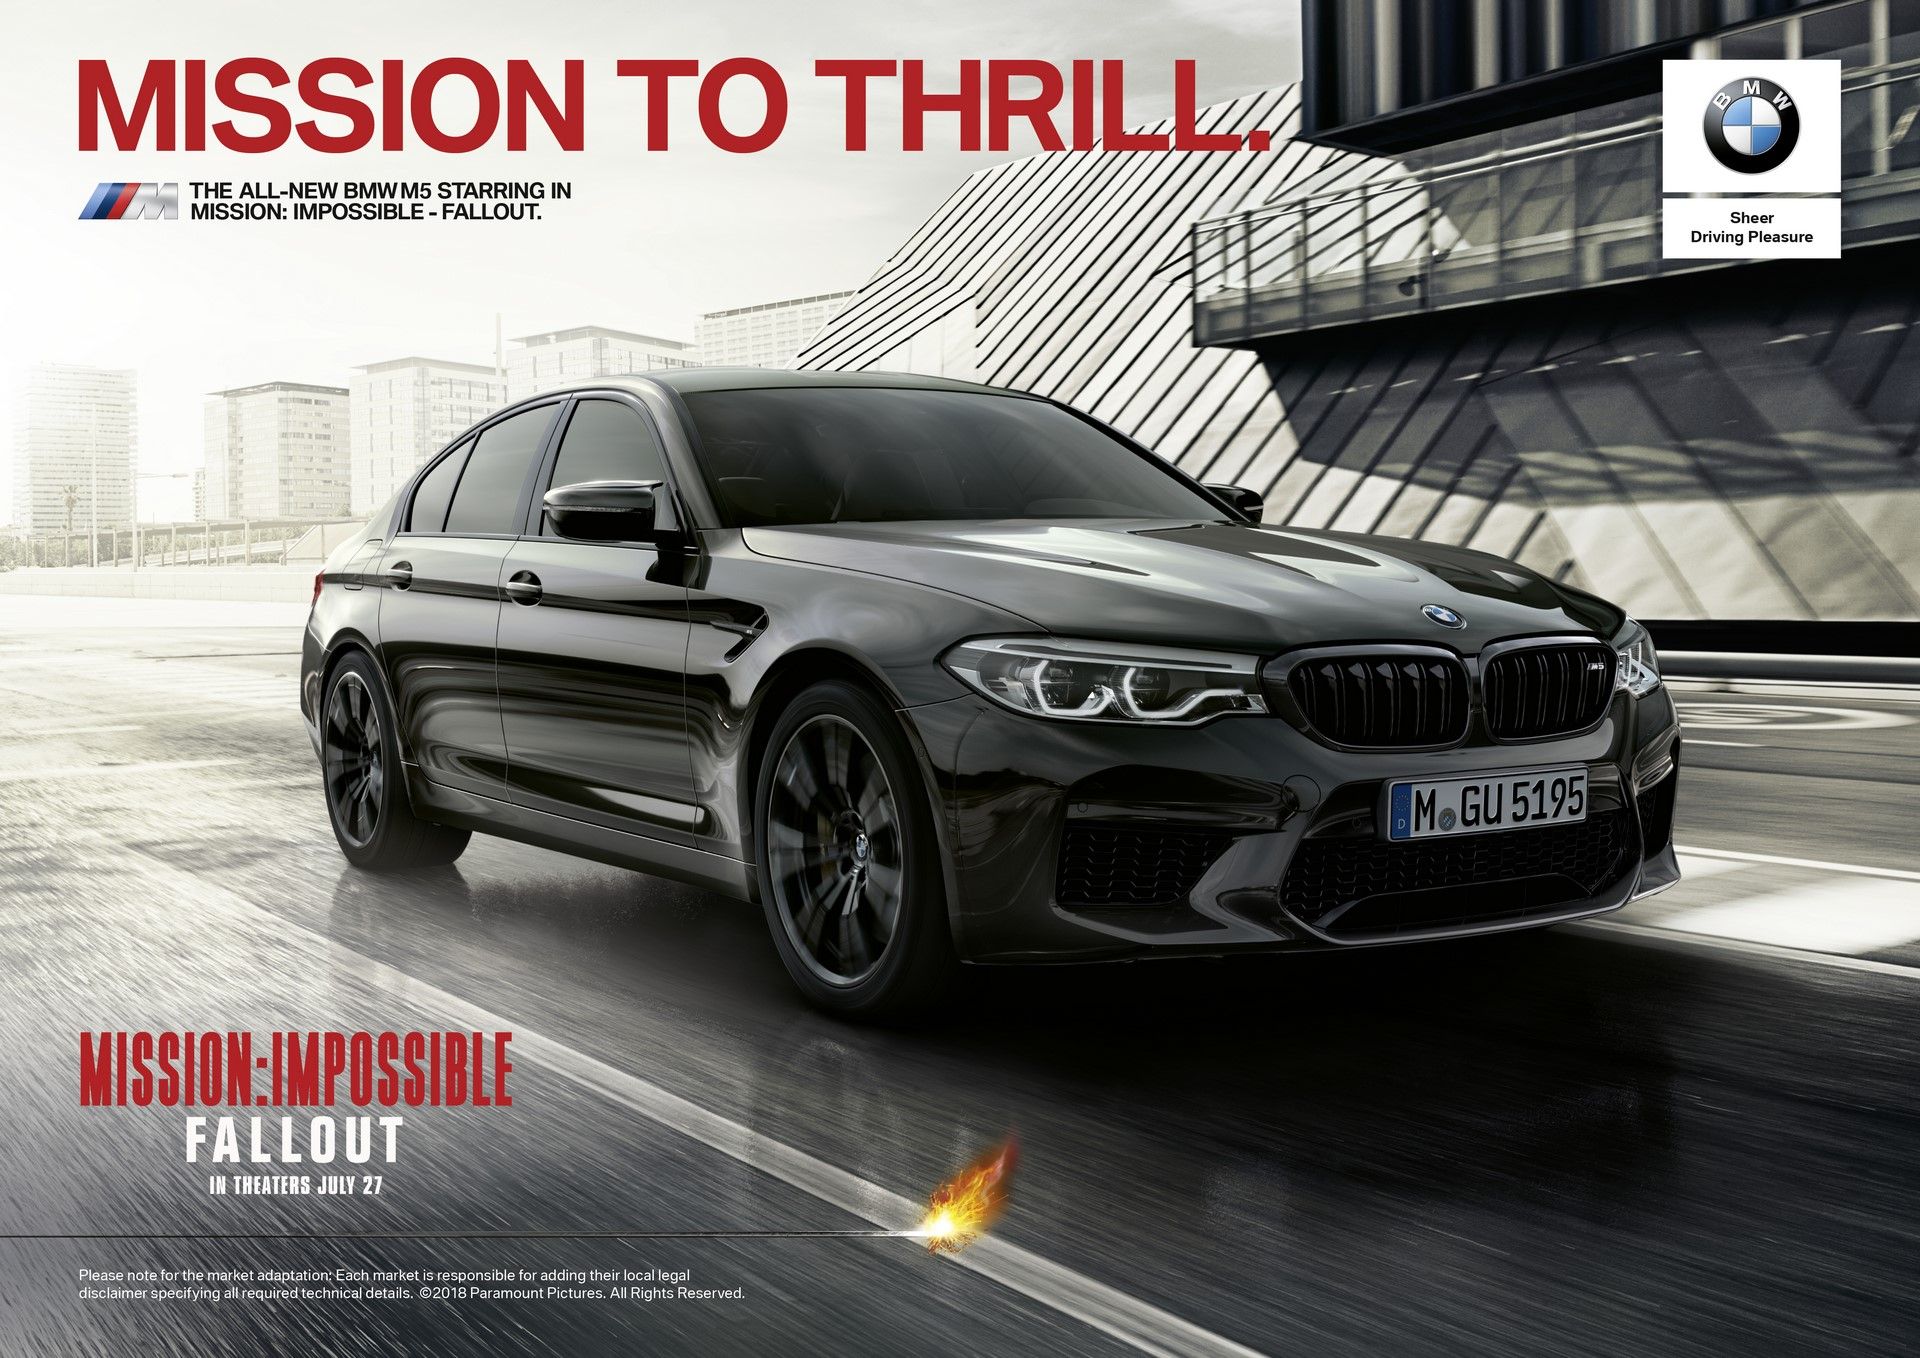 BMW Welt Mission Impossible Fallout (5)